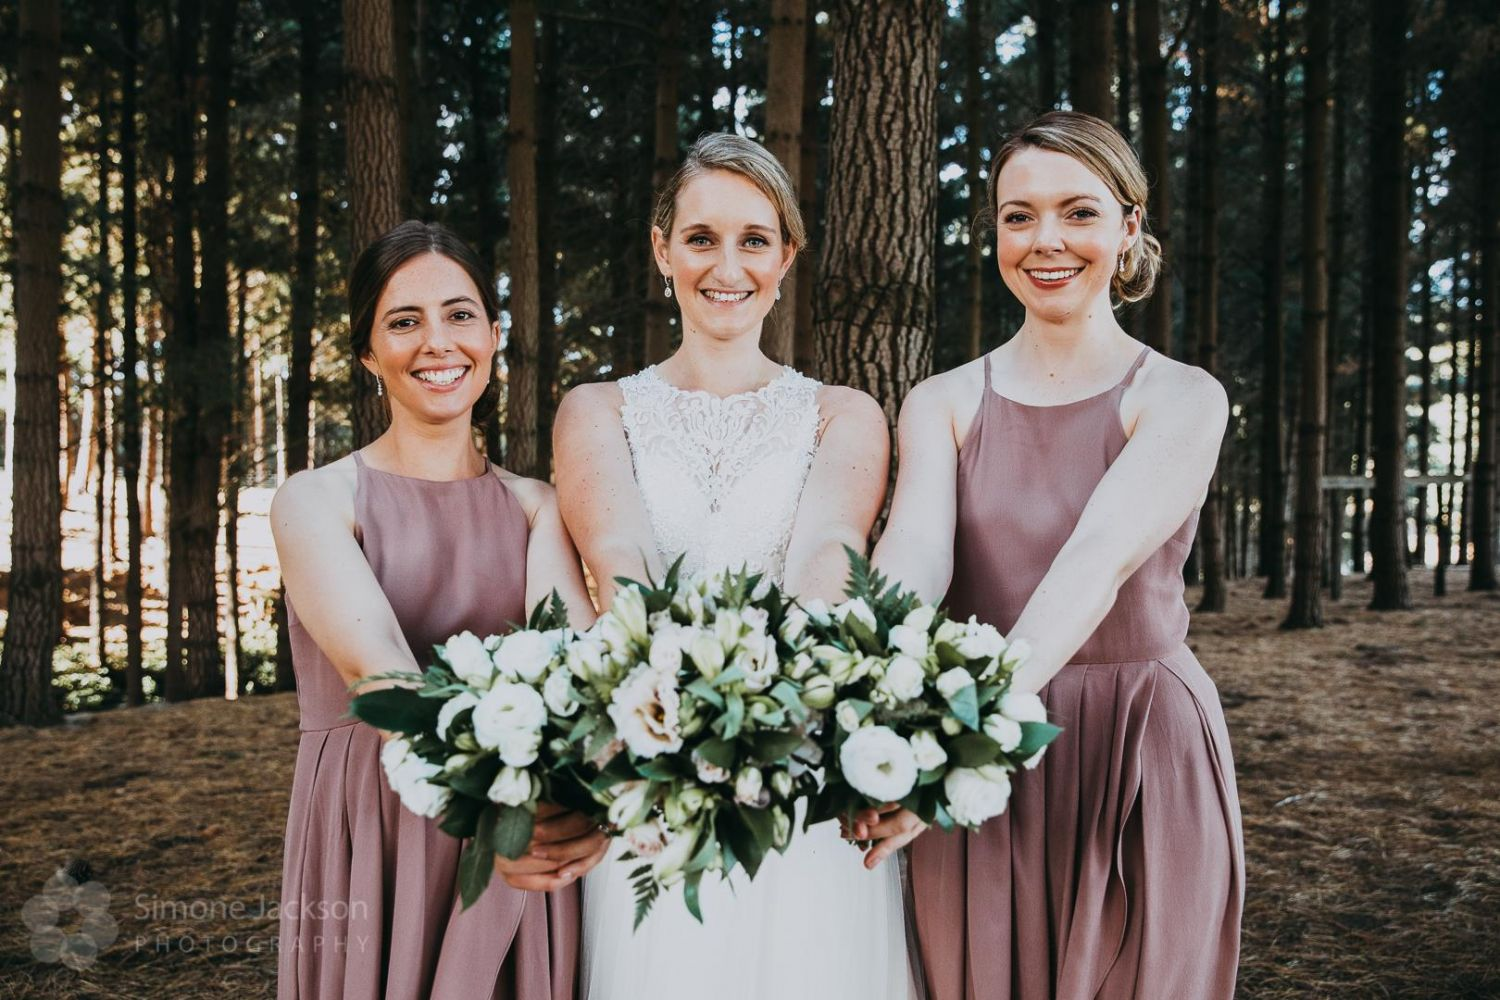 Vintage Blush - Finding your style - Weddings